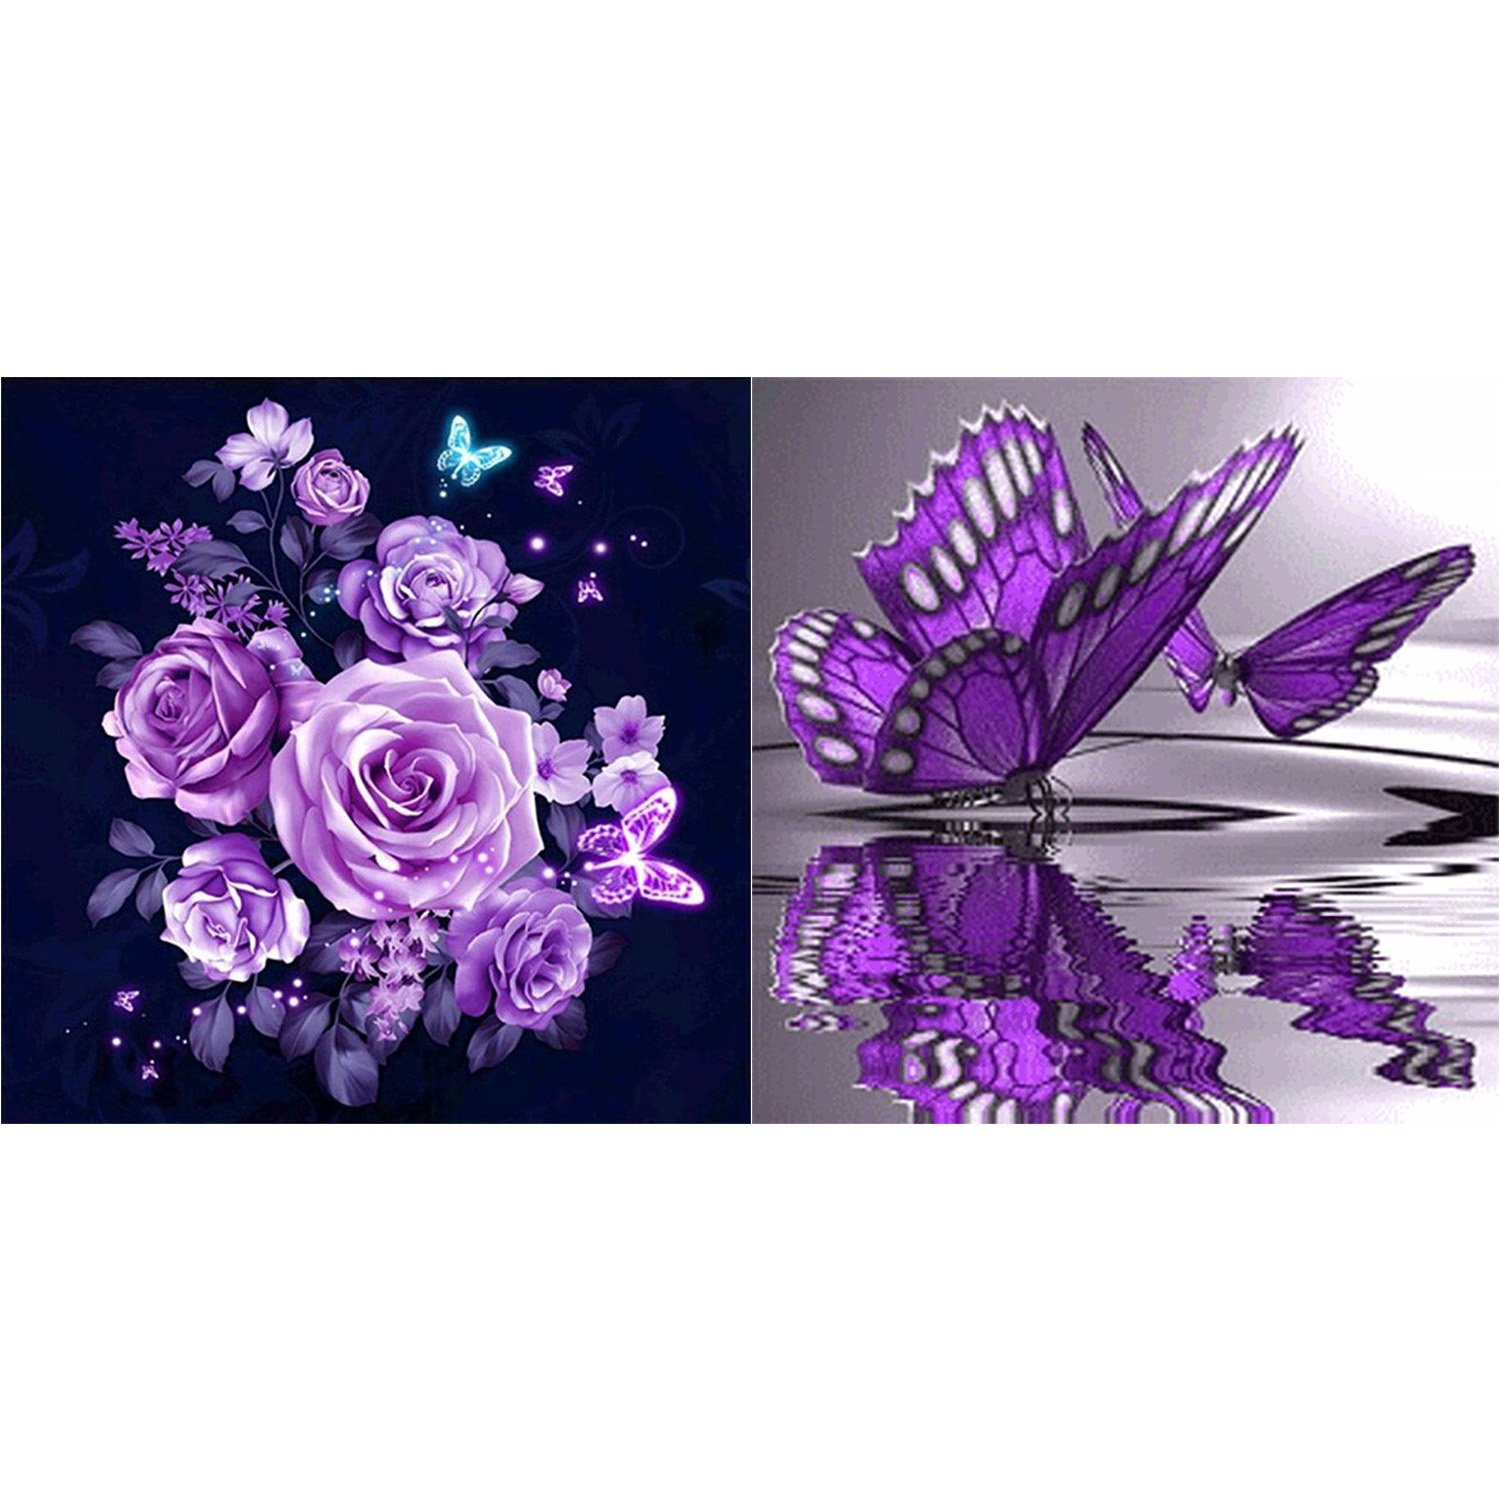 Hestya 2 Pieces Full Diamond Painting Rhinestone Painting Flowers Butterfly DIY Kit Supplies for Art Craft Home Decorations, 12 by 12 inch